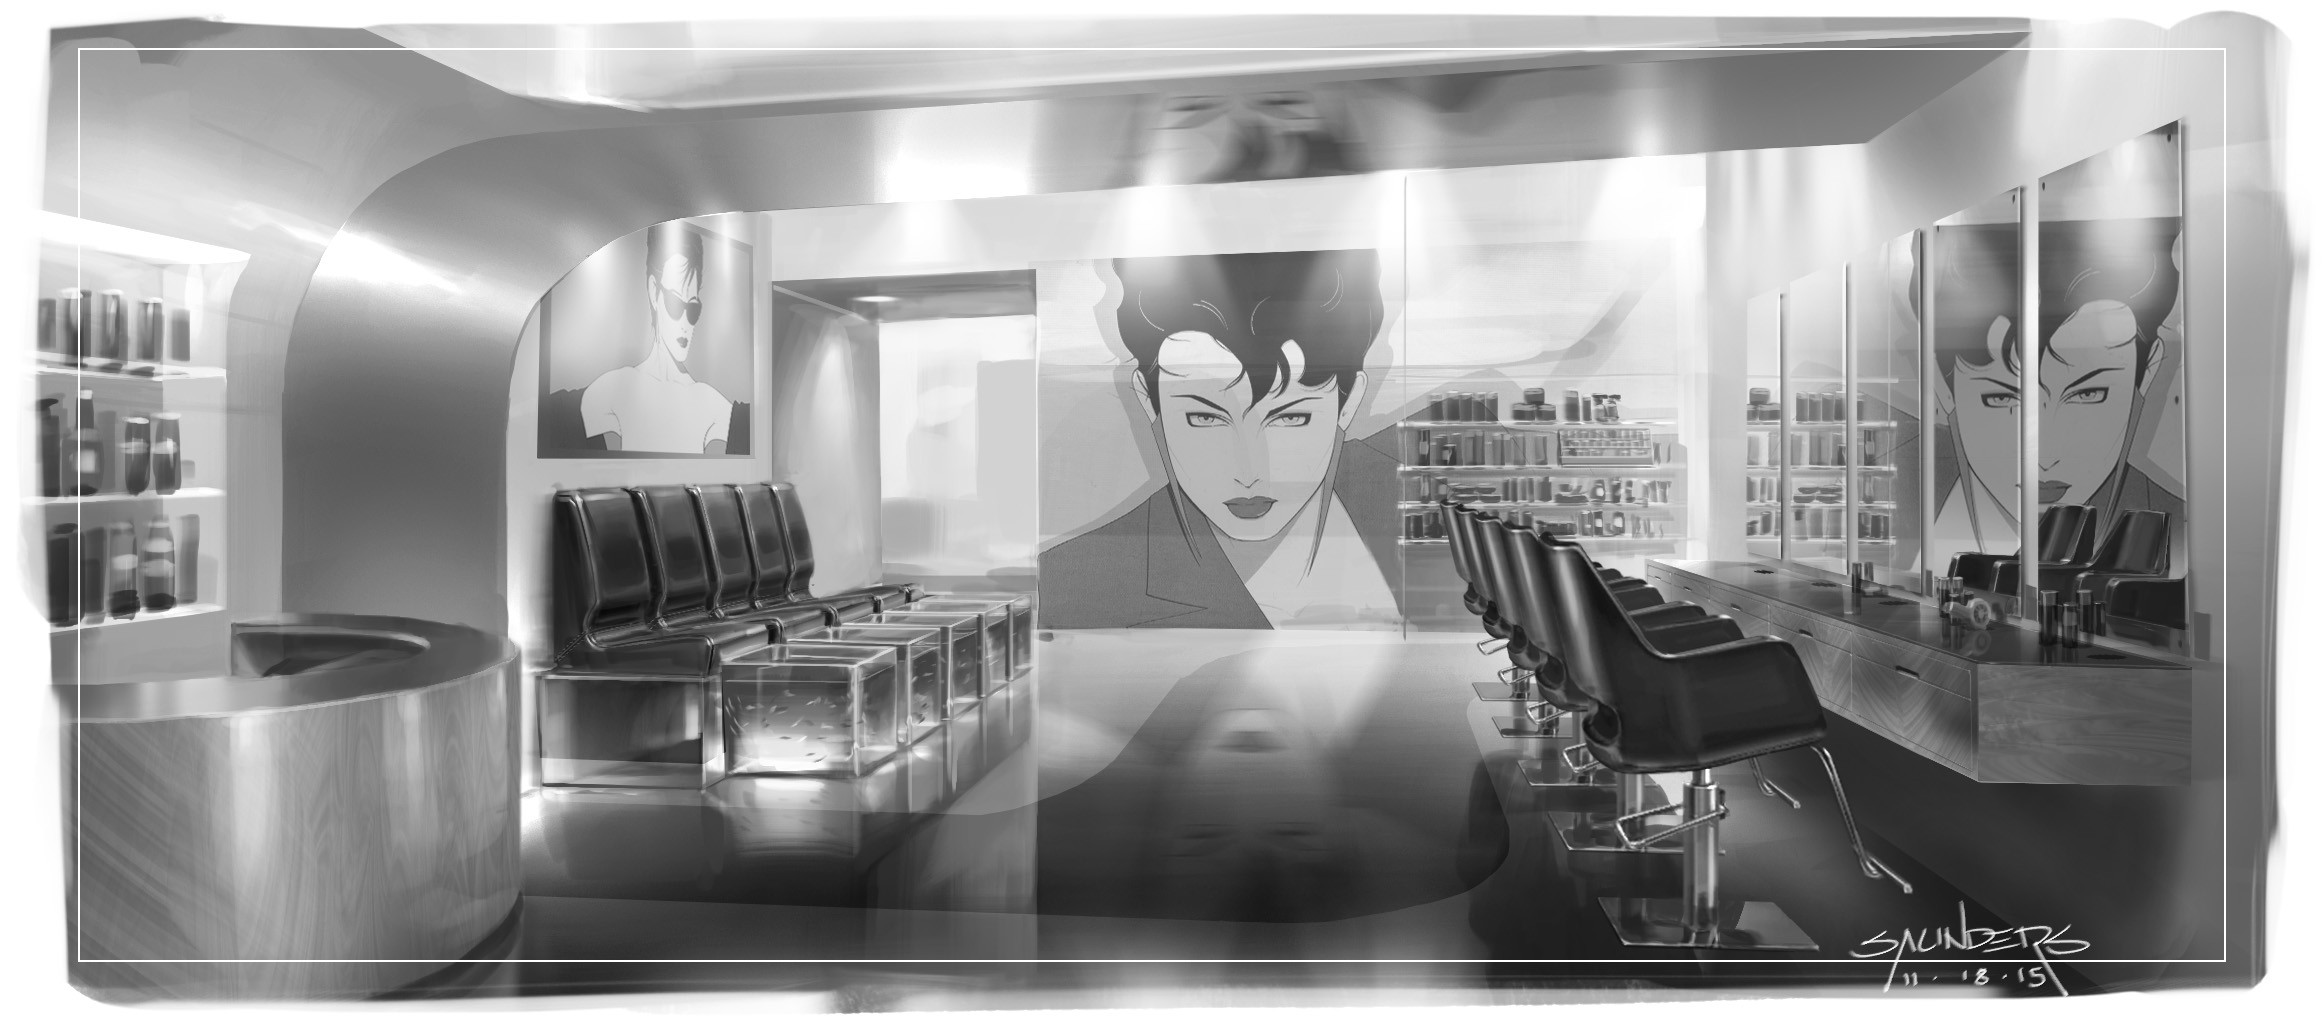 A more 80's New Wave inspired design. Art on the walls is Nagel, of course.